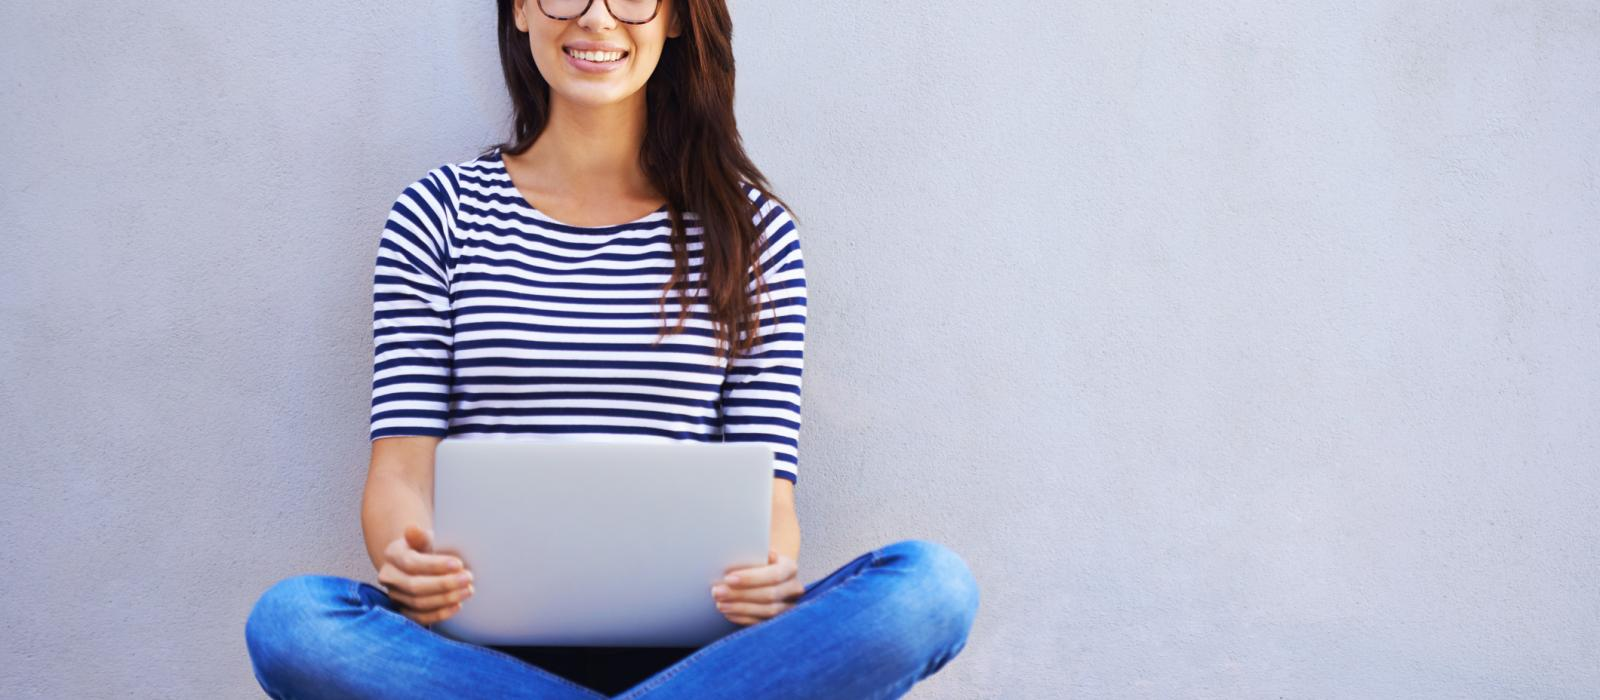 blogger completing survey on laptop